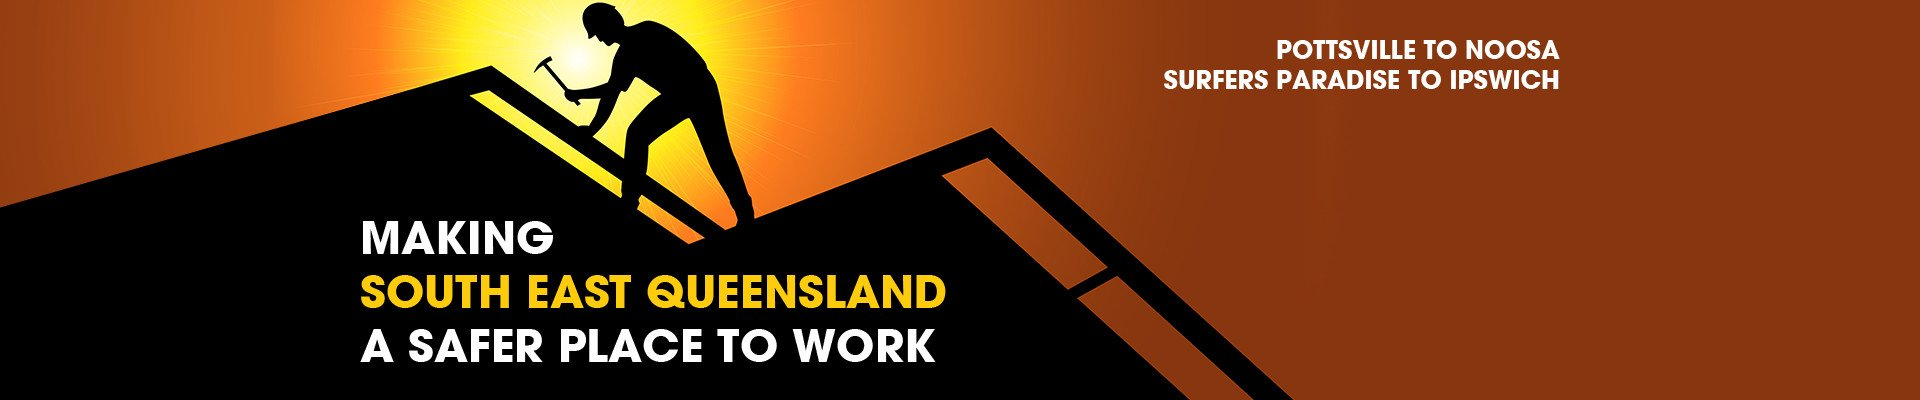 Safer Sites - Making South East Queensland a Safer Place to Work